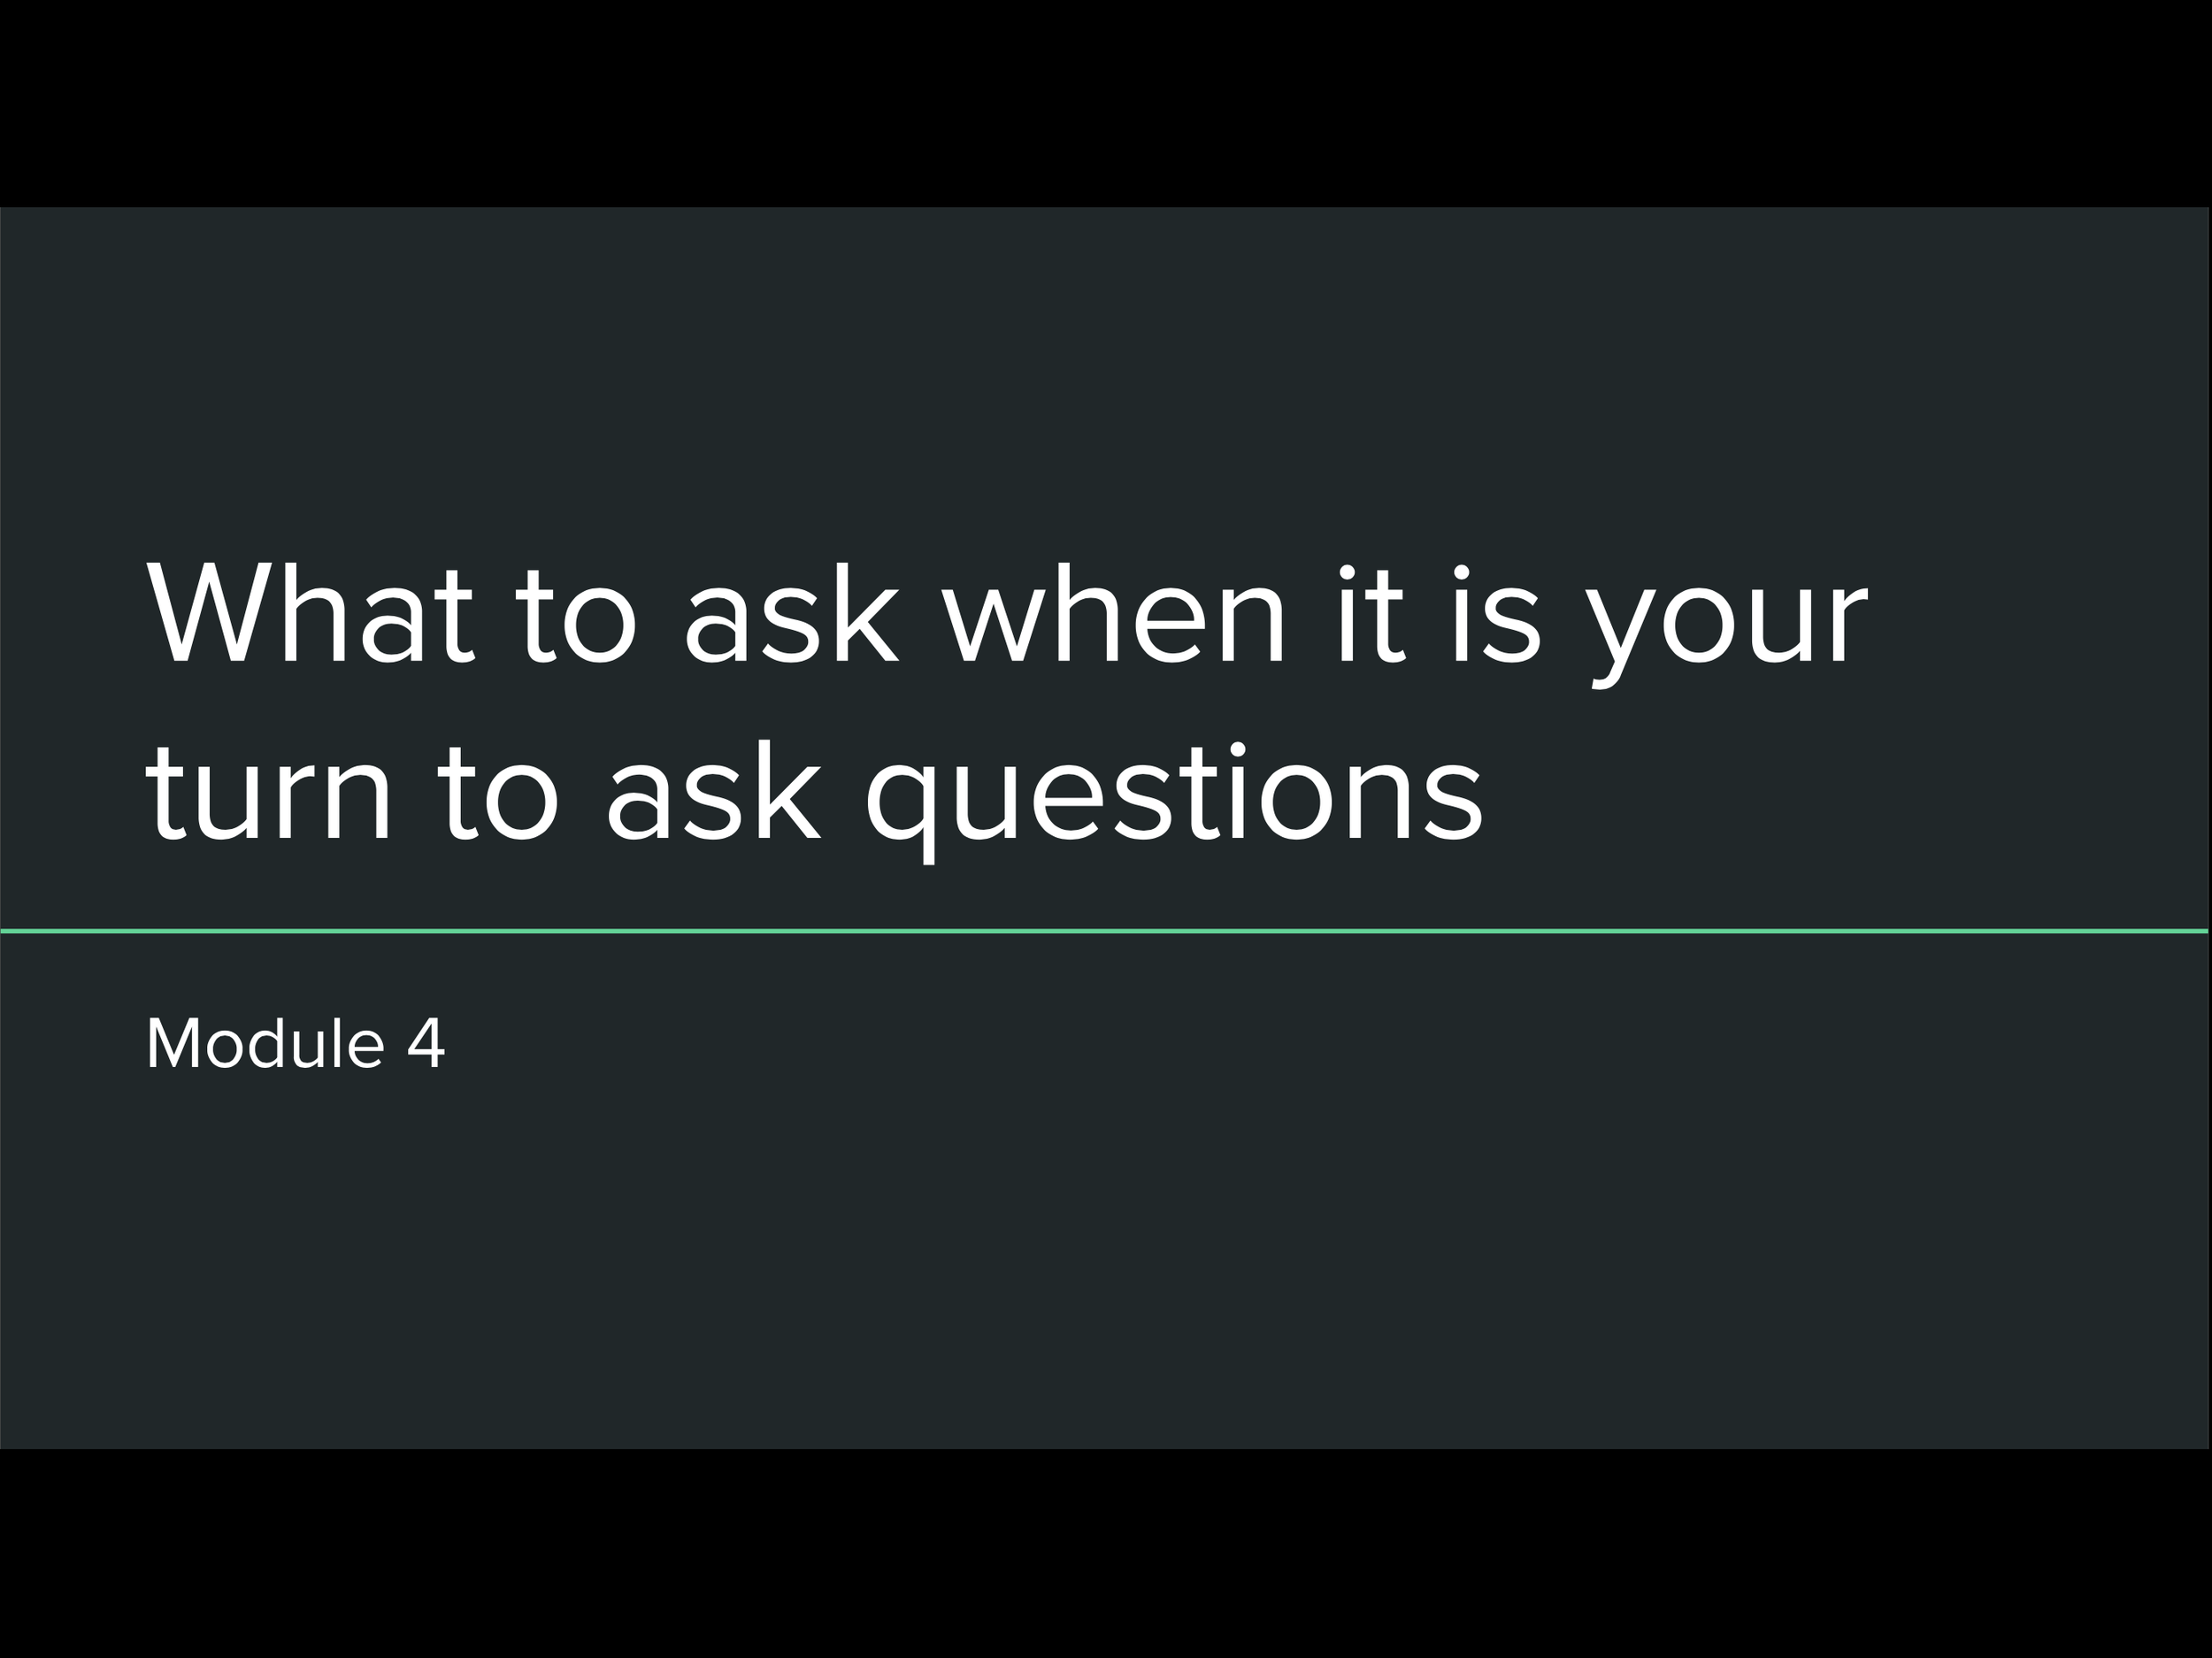 Module 4: What to ask when it is your time to ask questions